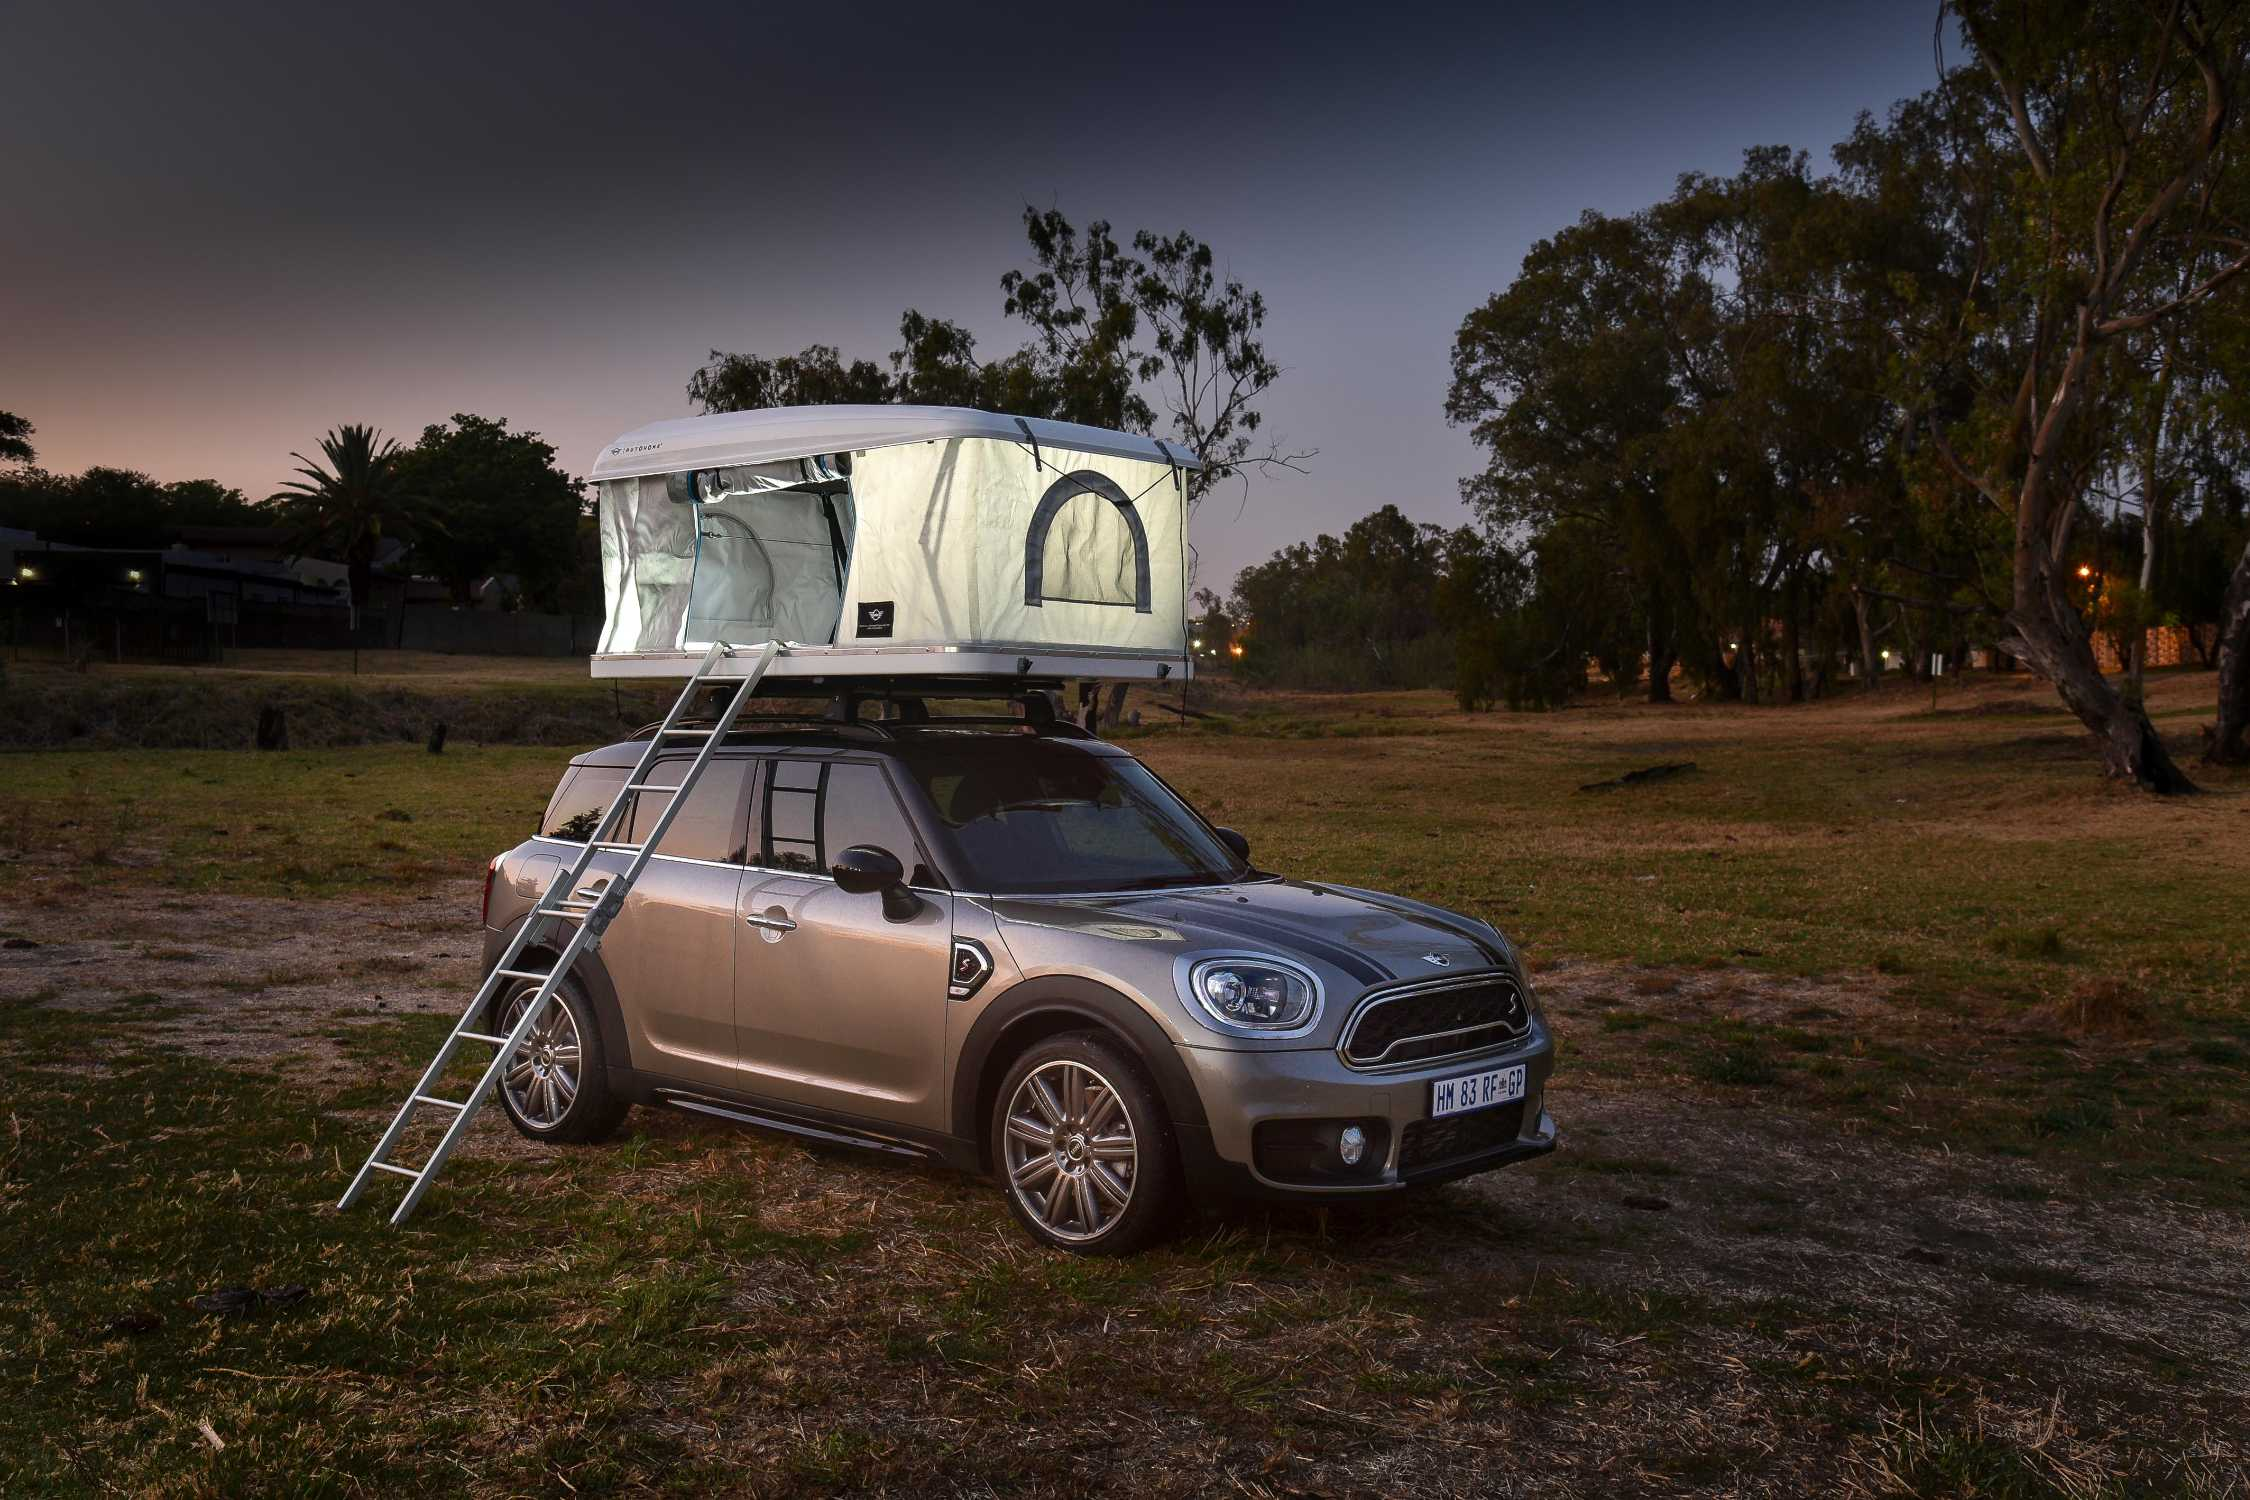 Aim High The Autohome Roof Tent For The Mini Countryman Makes A